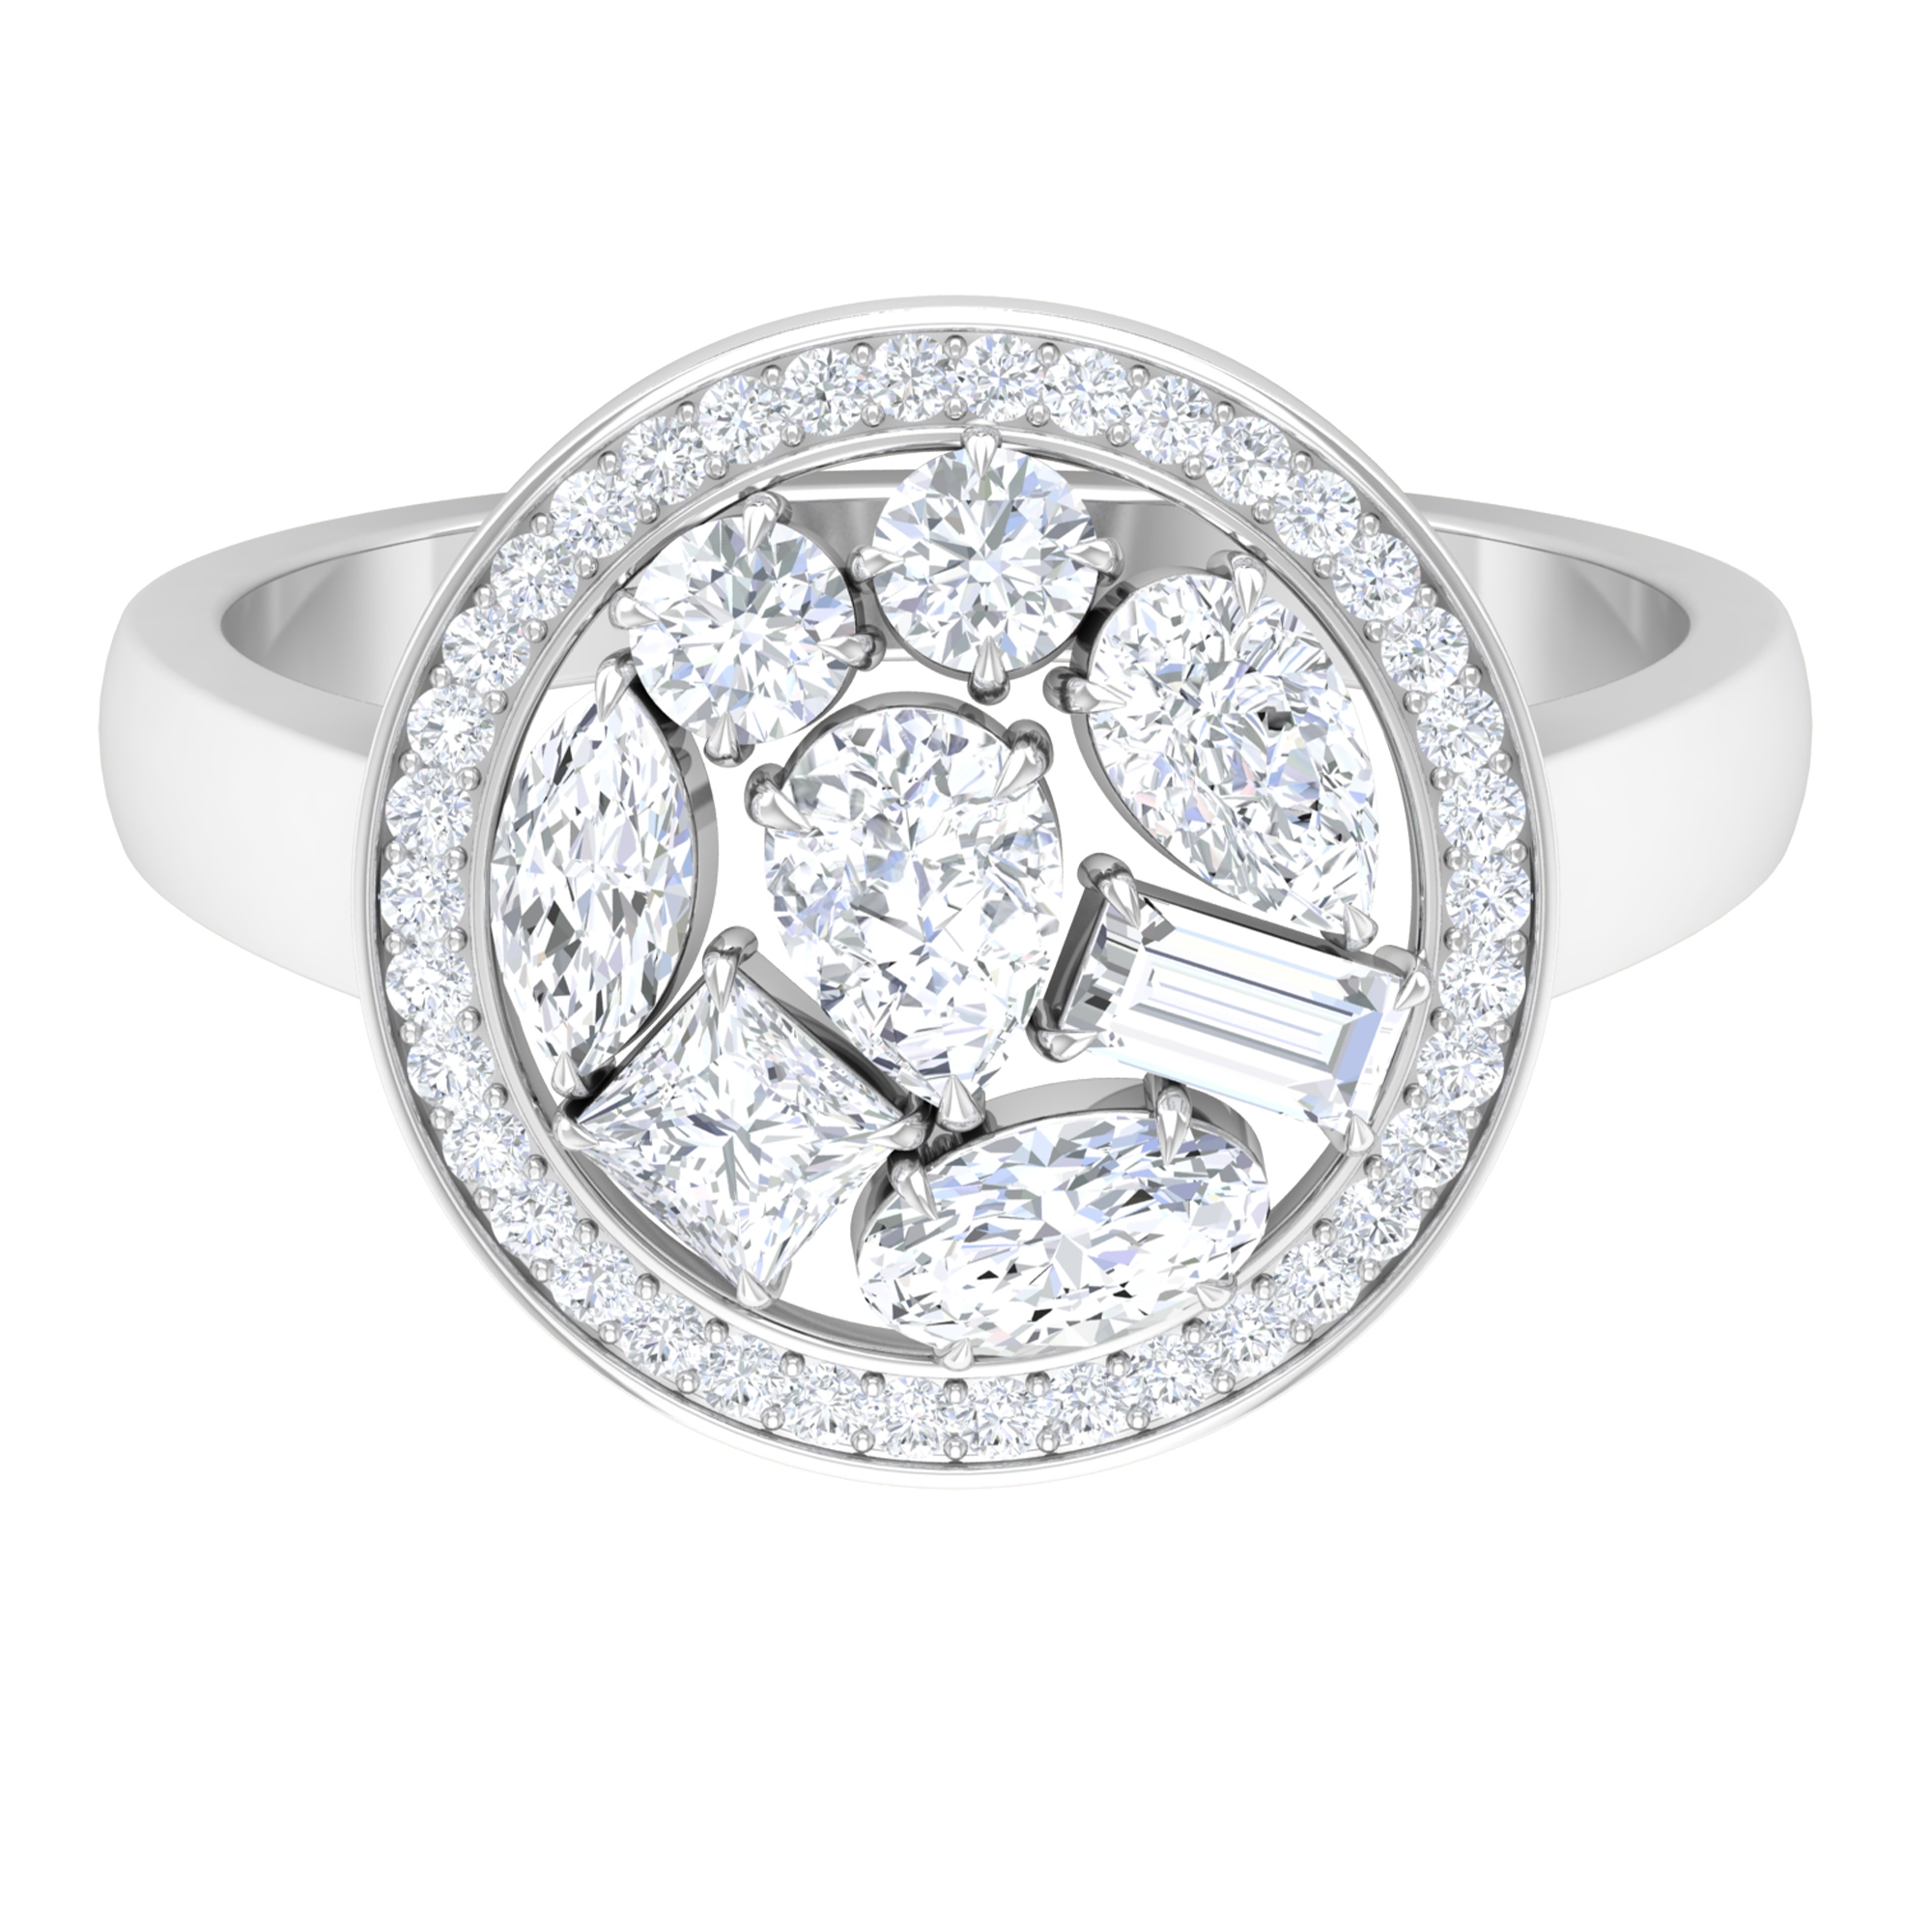 1.50 CT Prong Set Diamond Engagement Ring with Cluster Halo